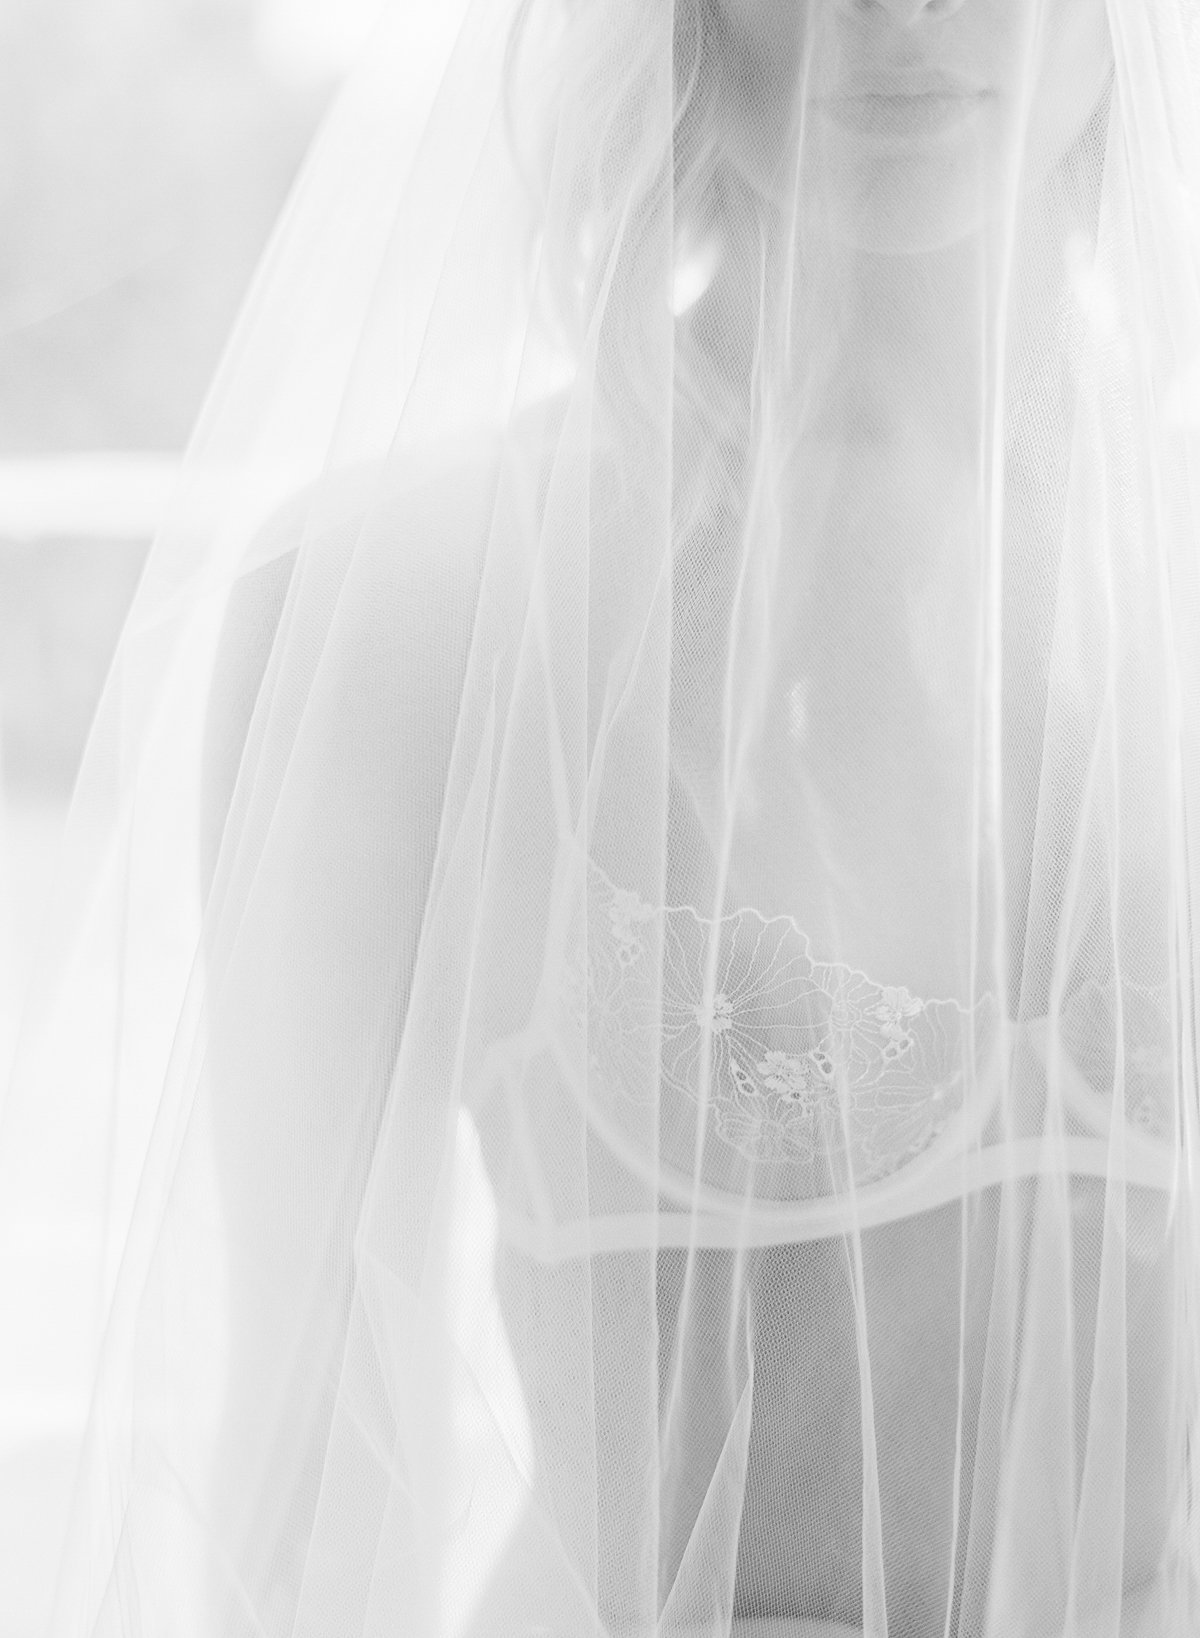 Paris-Wedding-Photographer-Film-Photographer-France-Molly-Carr-Photography-12